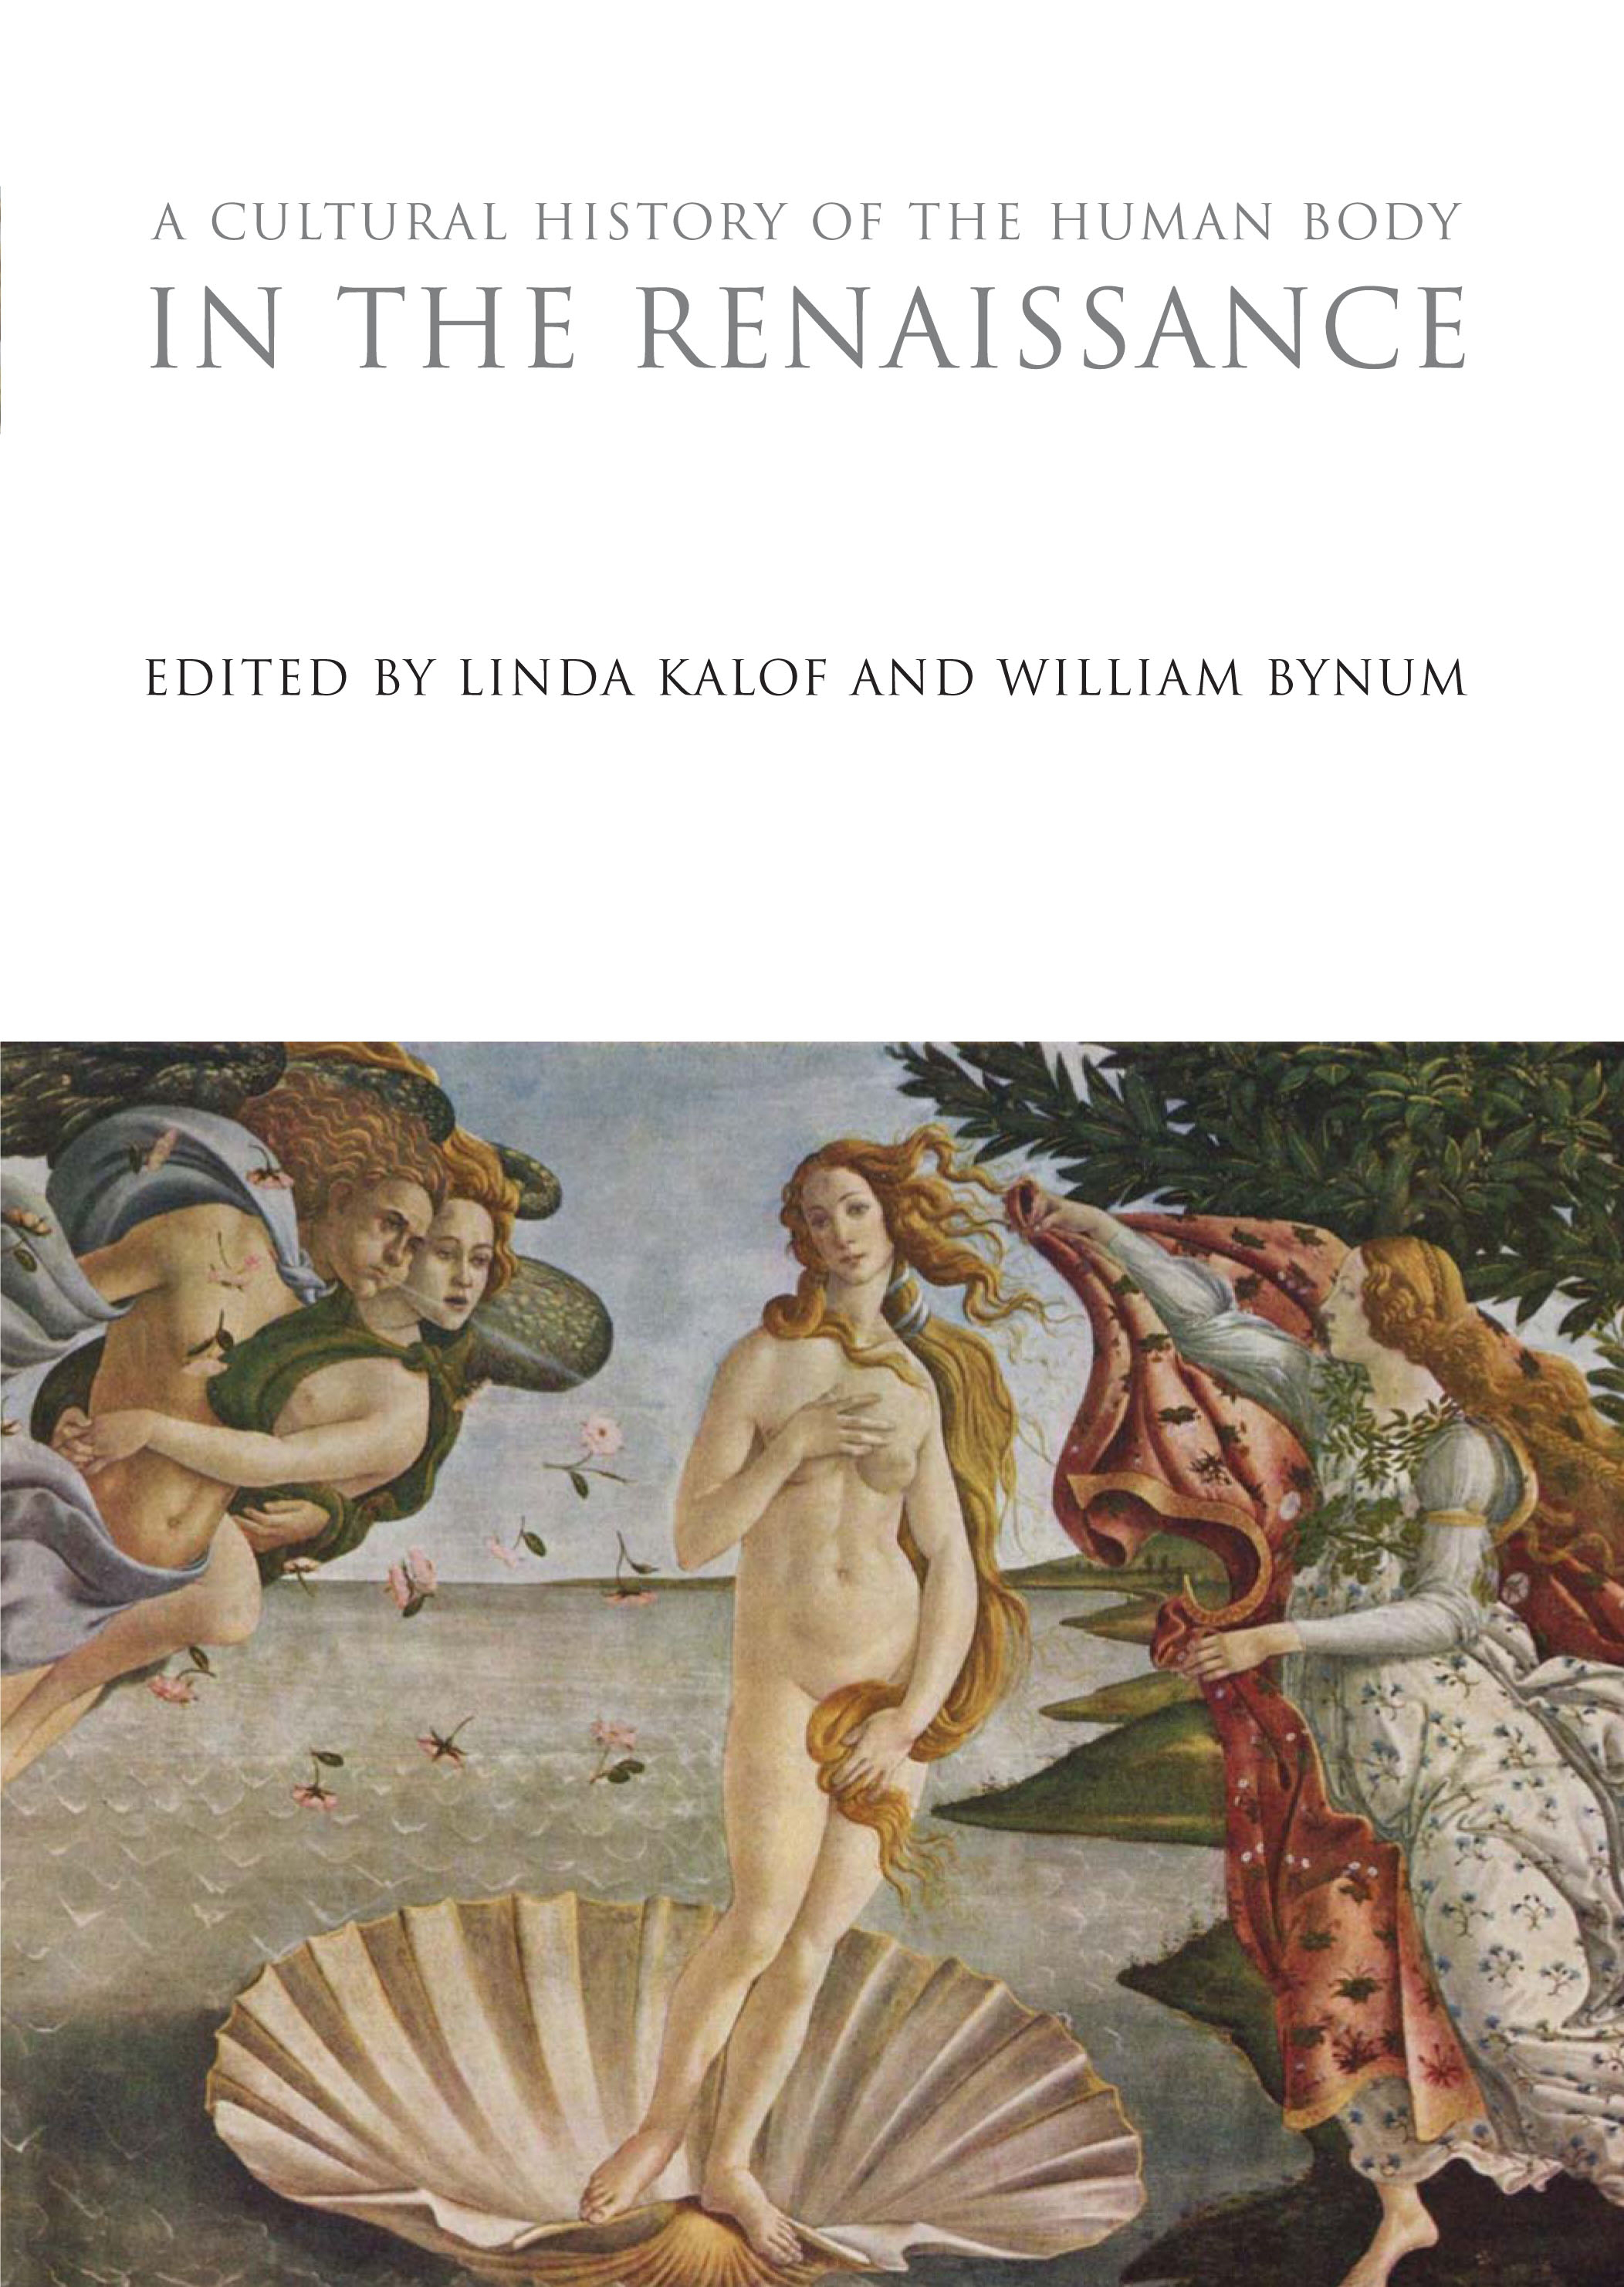 an analysis of the humanism in the ranaissance period The renaissance questions and analysis in history download textbooks free pdf posted by caleb rodriguez on october 11 2018 this is a ebook of the renaissance questions and analysis in history that you can be safe this by your self at ptcog54org.